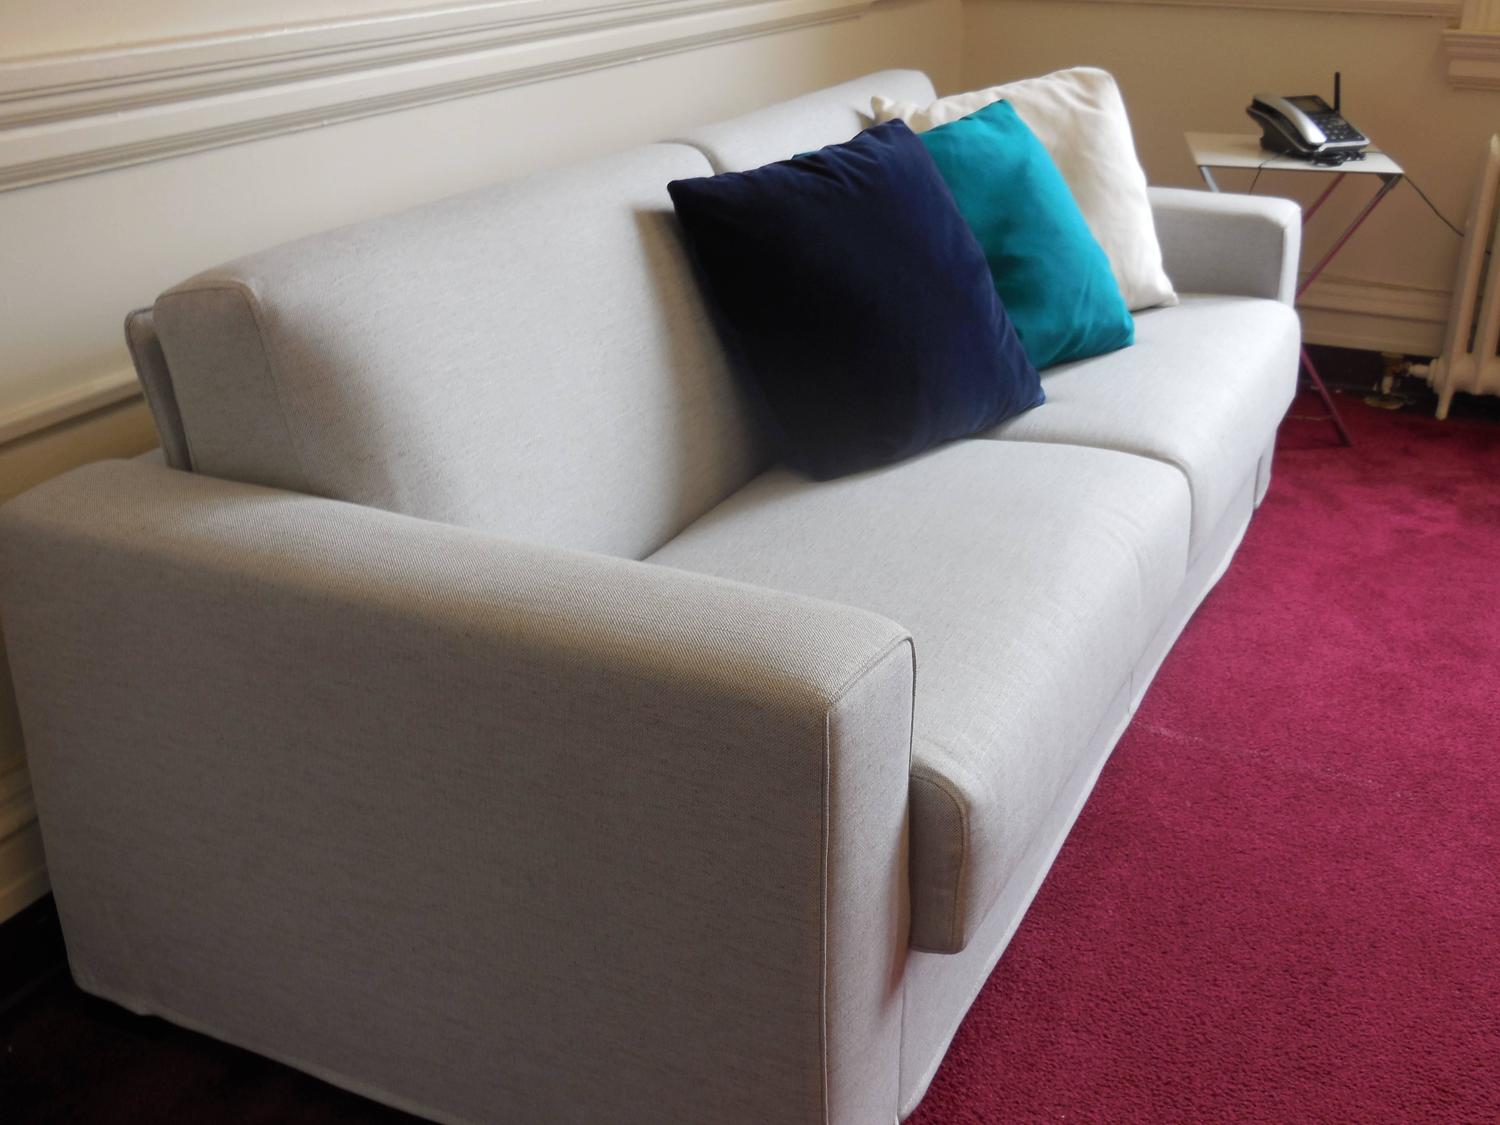 Modern Italian Sofa Bed SB52, Made In Italy, Leather Or Fabric, New For  Sale At 1stdibs